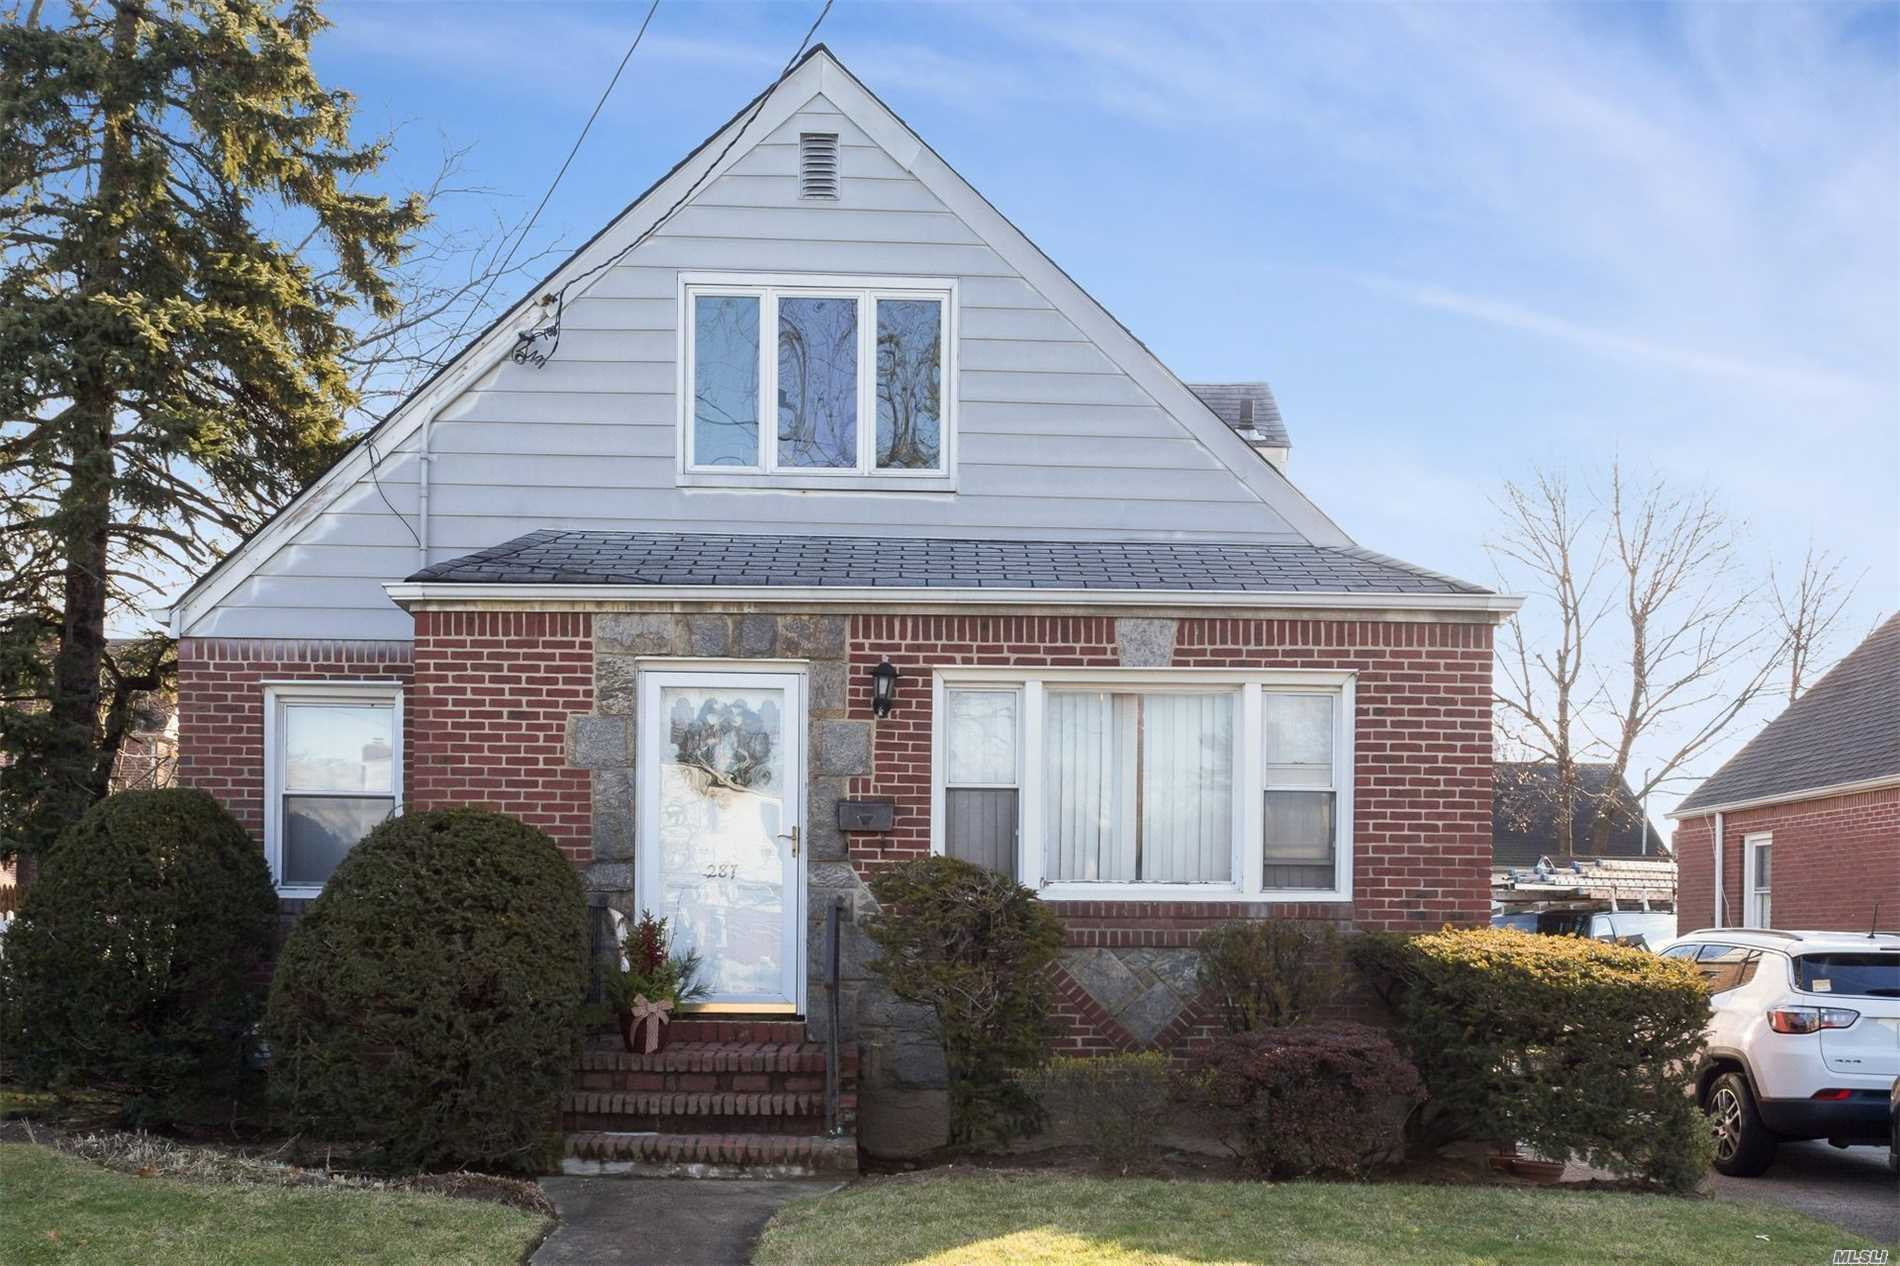 Photo of home for sale at 287 Corona Ave N, Valley Stream NY